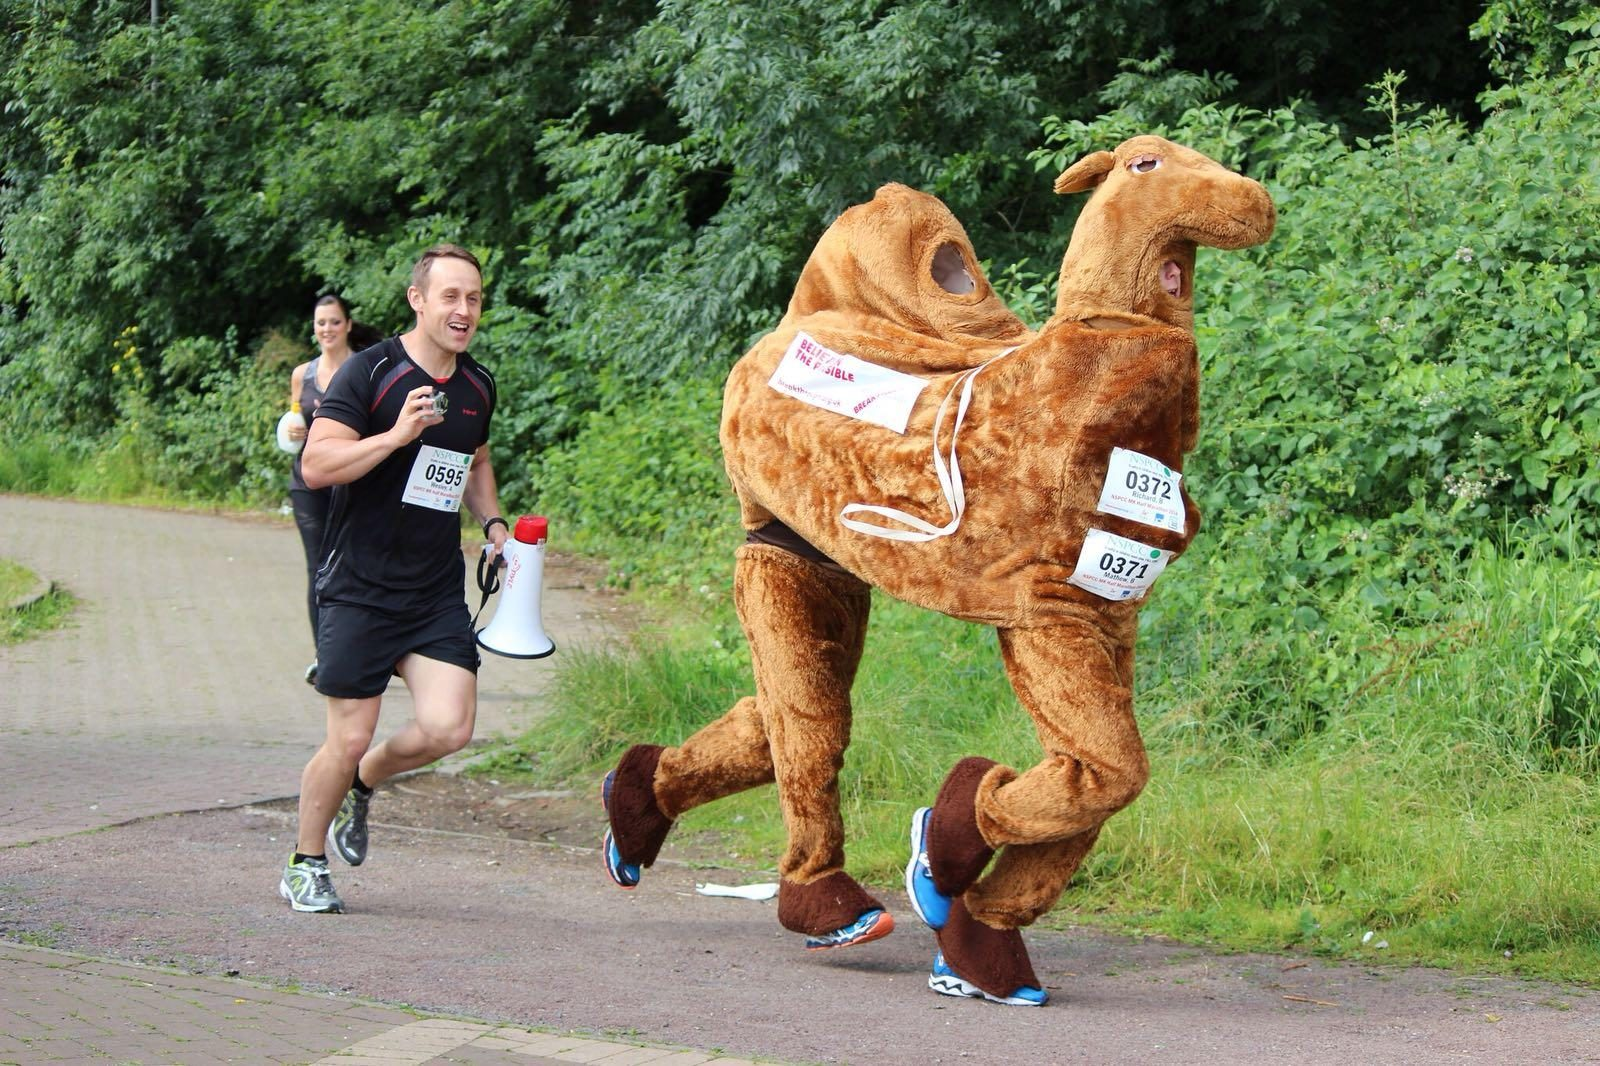 Running a race dressed as a camel